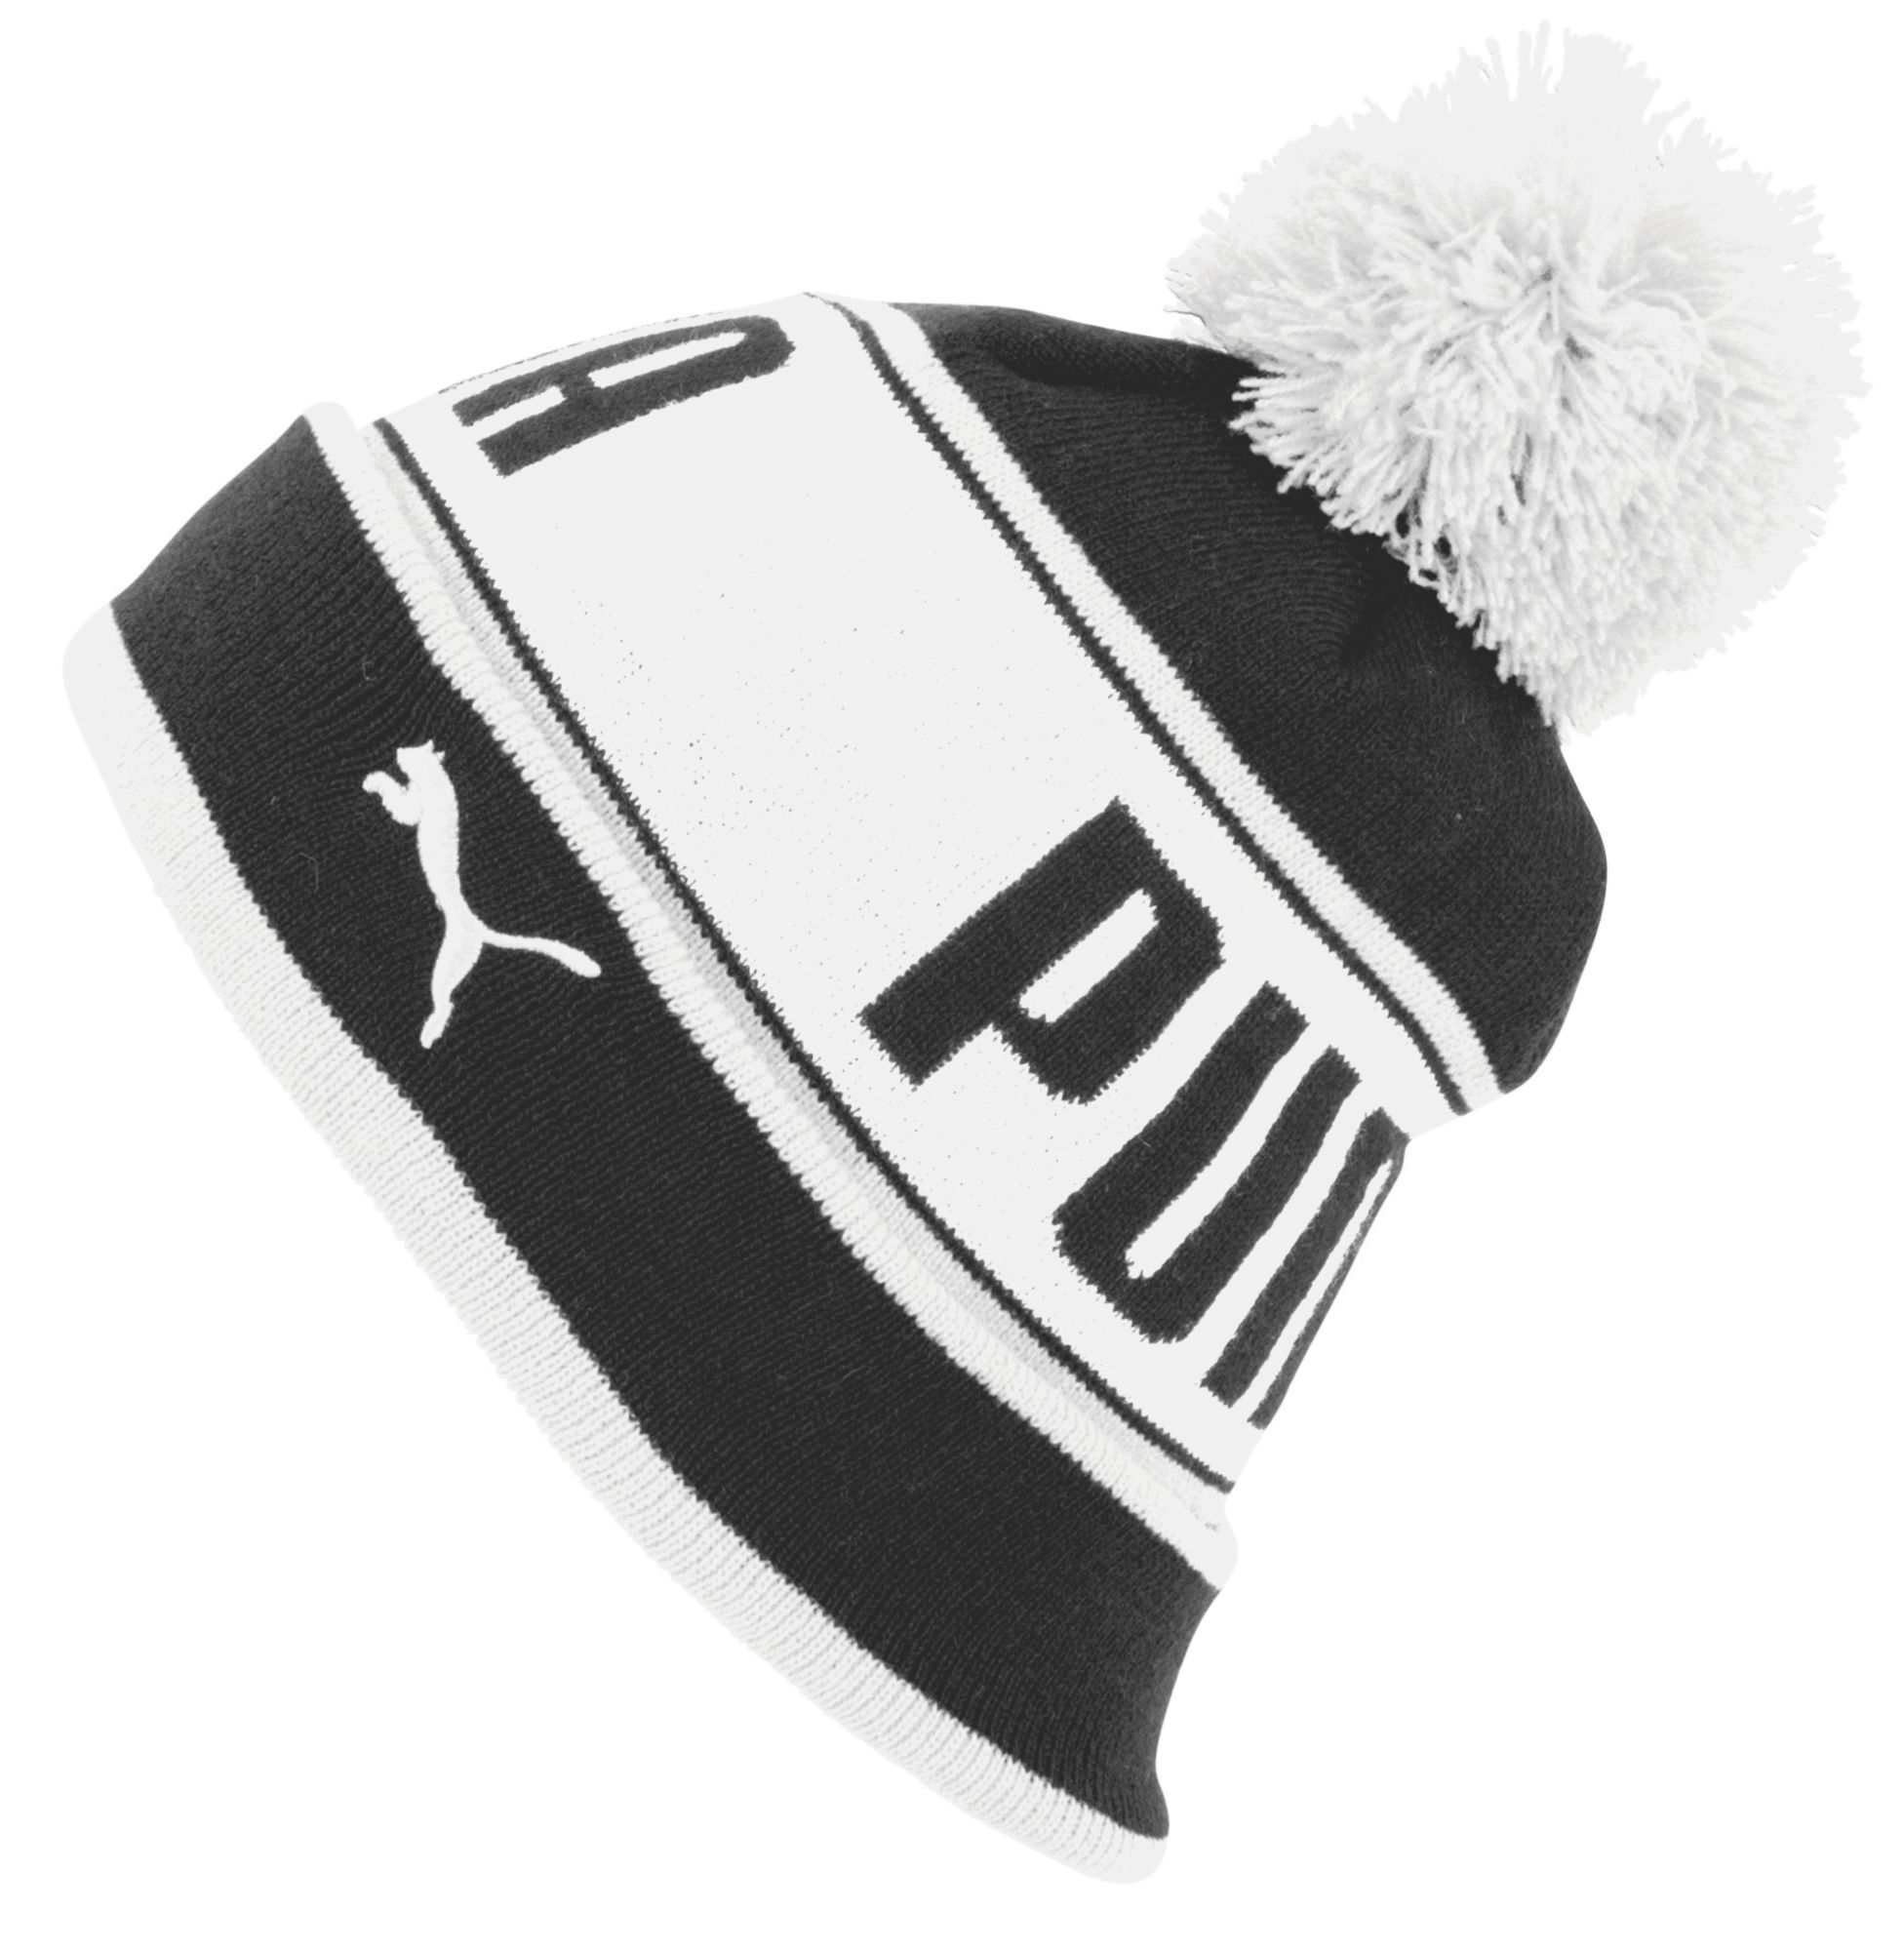 Lyst - PUMA Capital Pom Beanie in Black for Men c451e3c5cfb